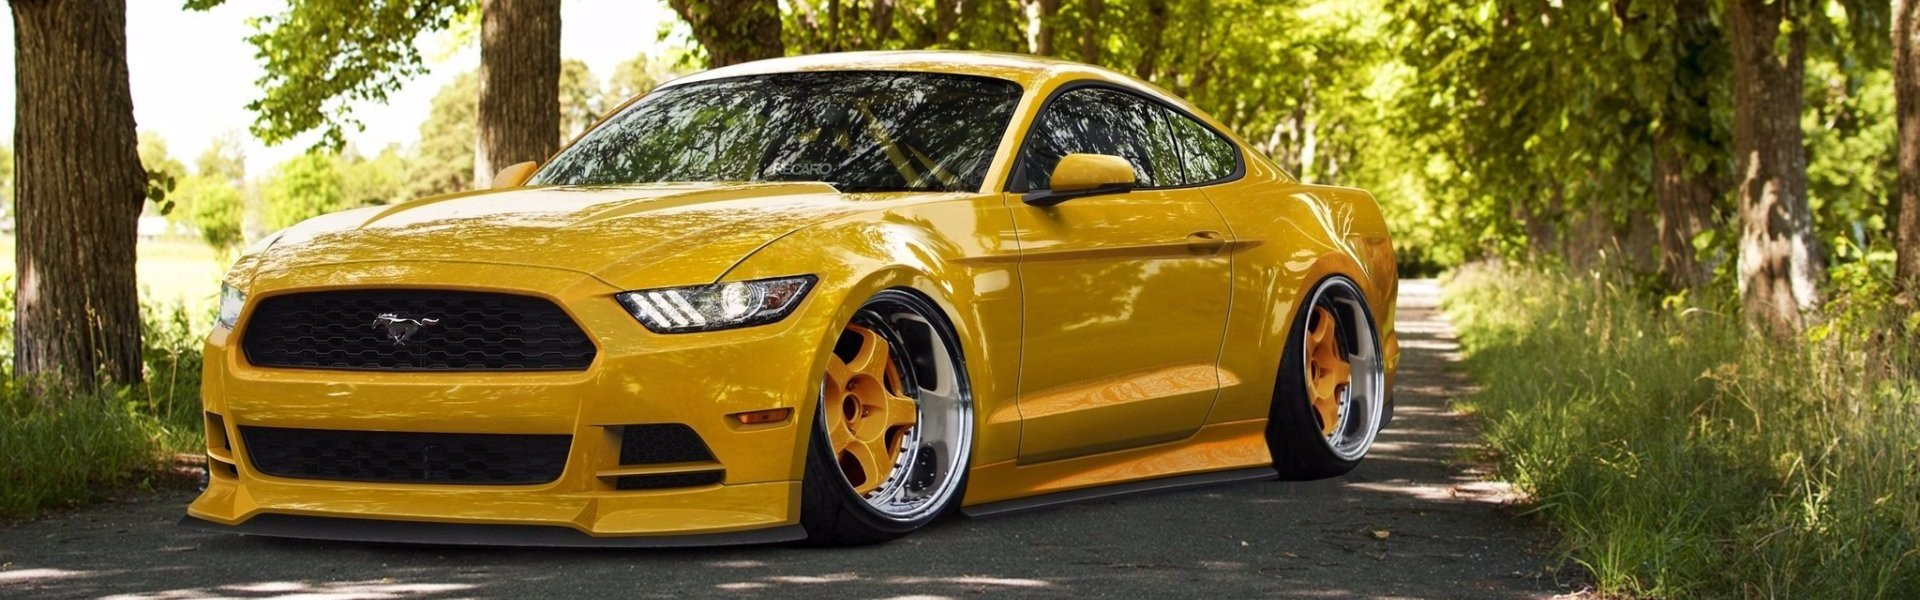 Ford Mustang 2015 yellow stance-тюнинг